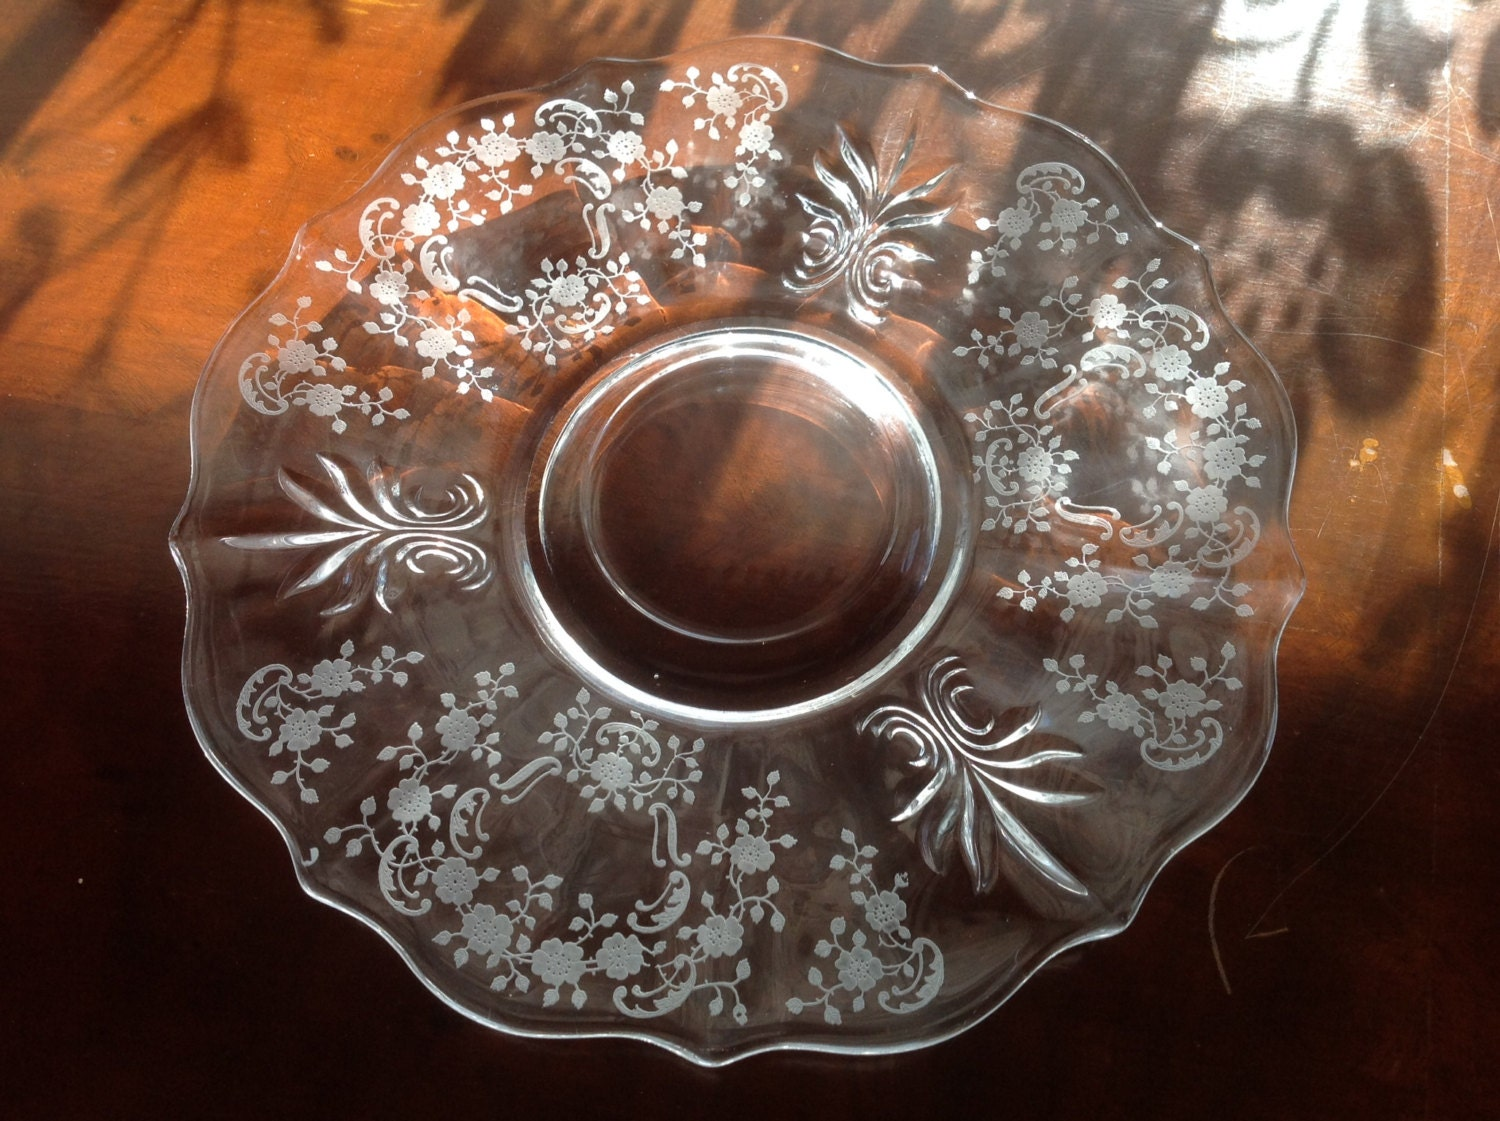 Blue Tape Sales >> Fostoria Meadow Rose Plate / Platter Etched Glass Baroque